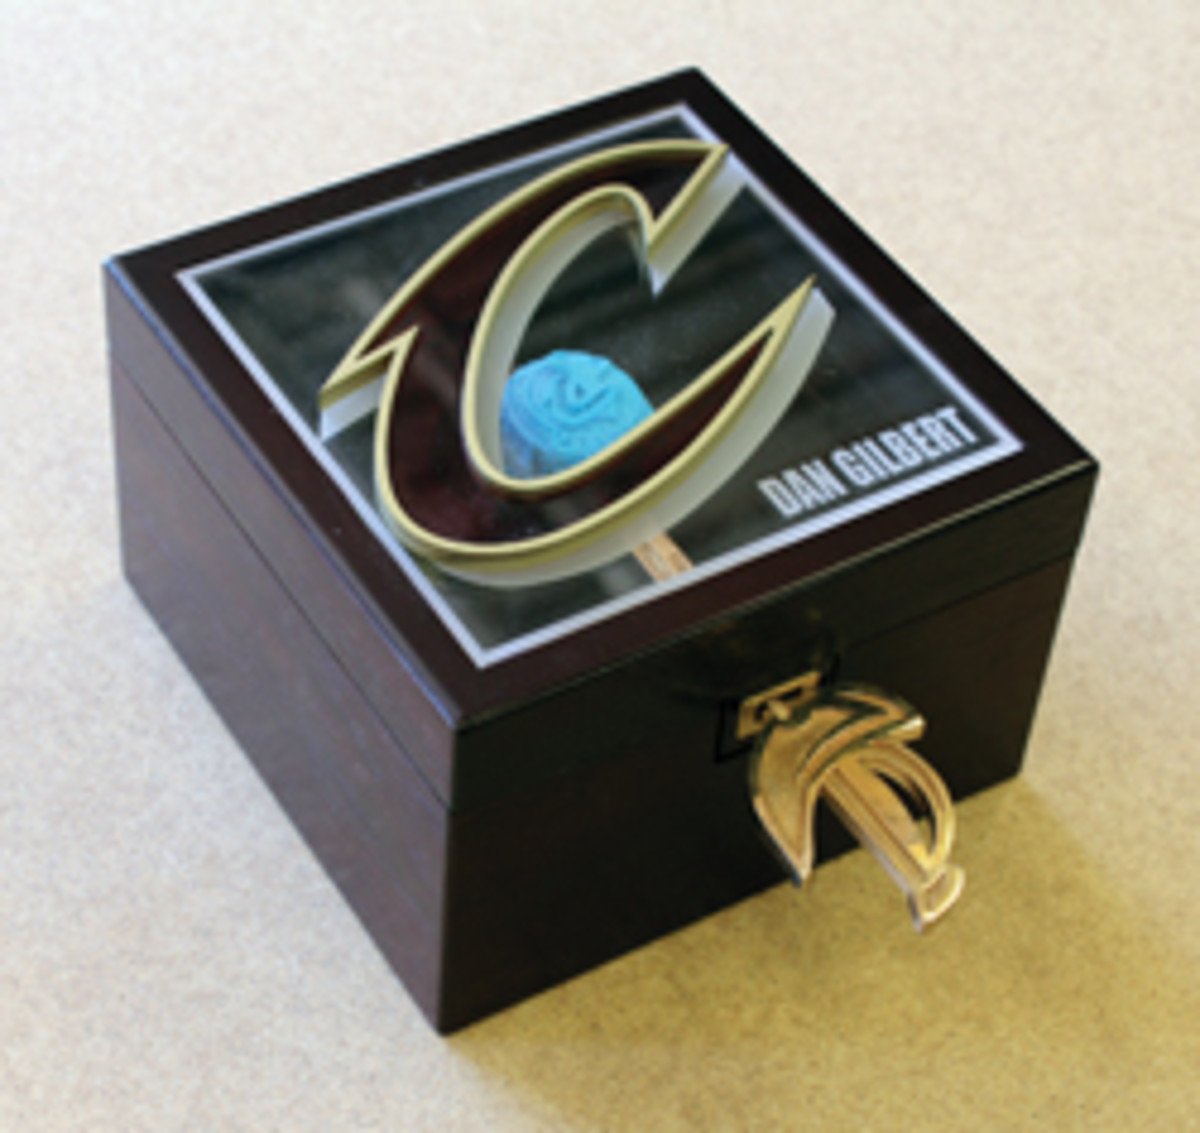 Ring box for the Cleveland Cavaliers.